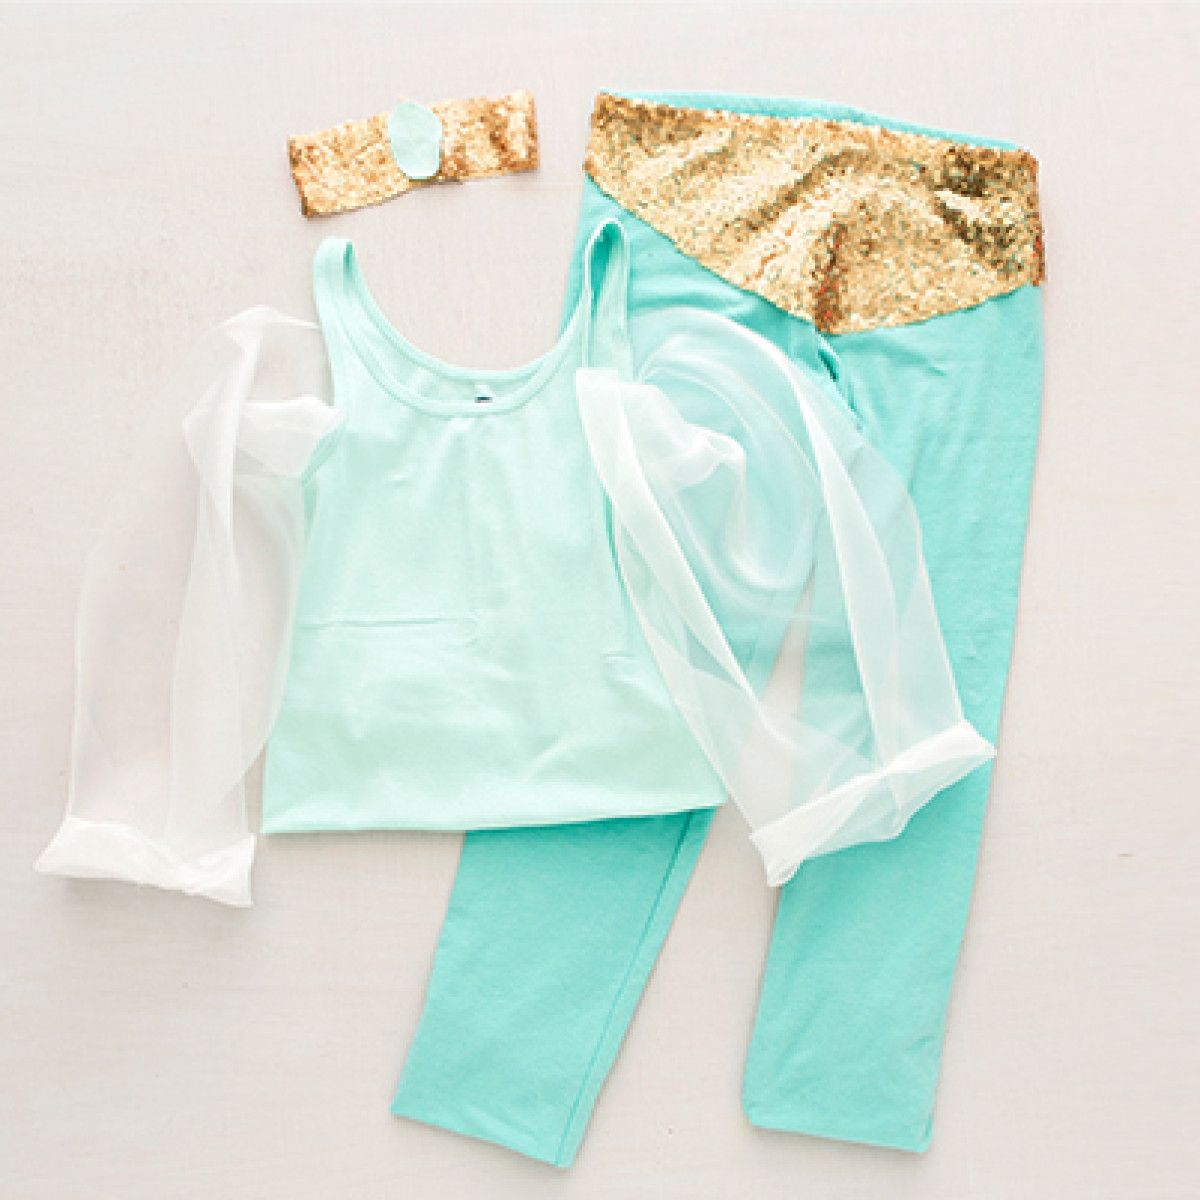 DIY Princess Jasmine Costume | Disney Family & DIY Princess Jasmine Costume